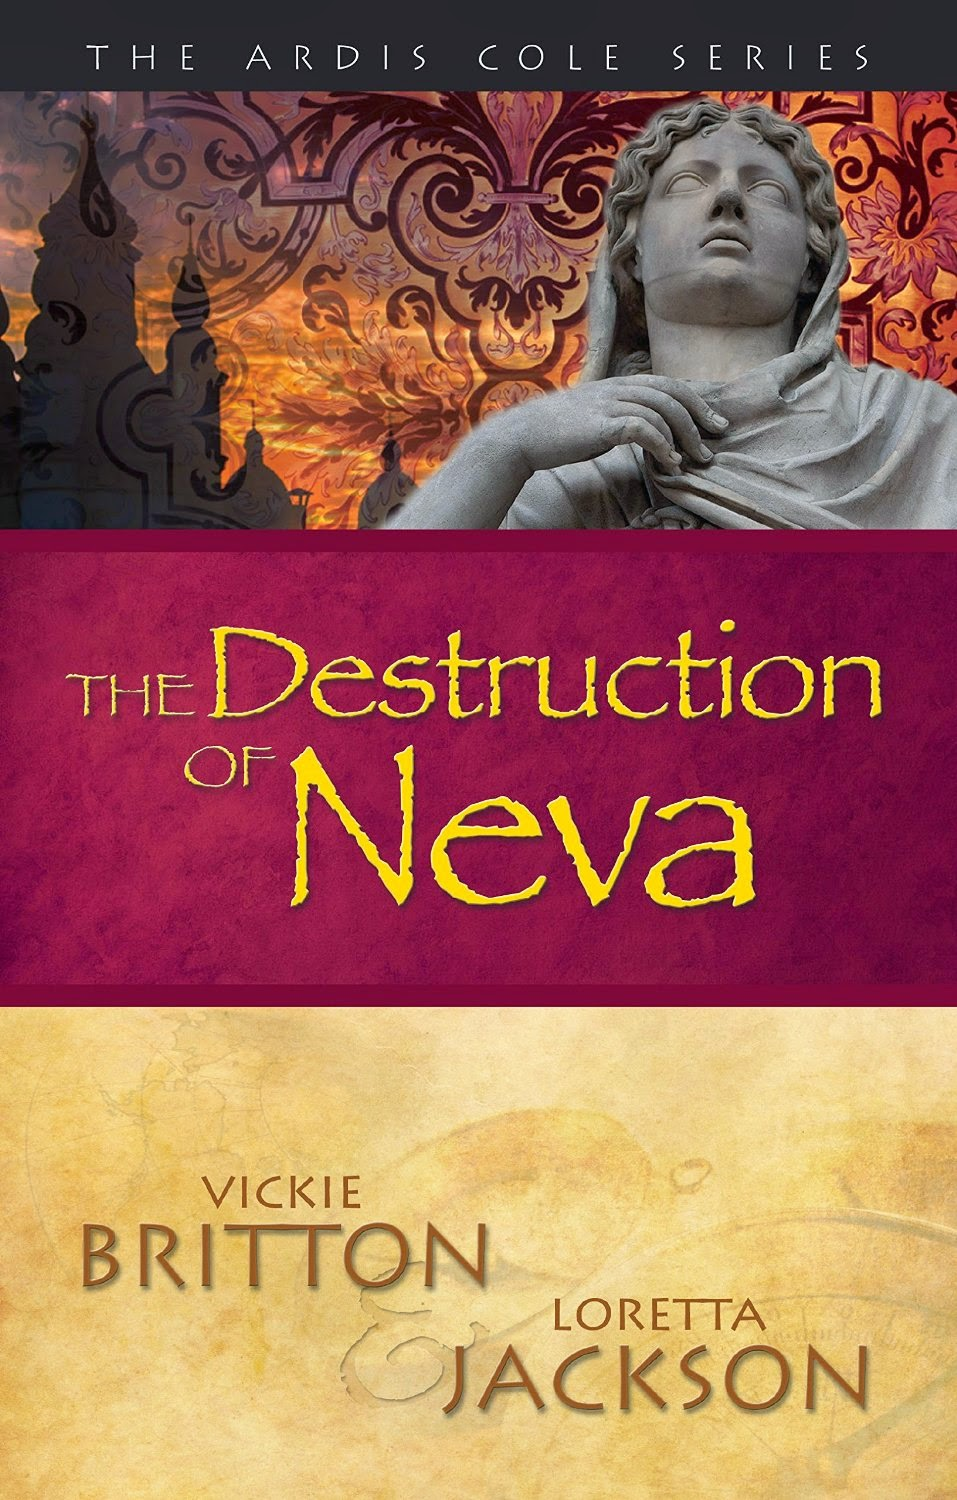 THE DESTRUCTION OF NEVA